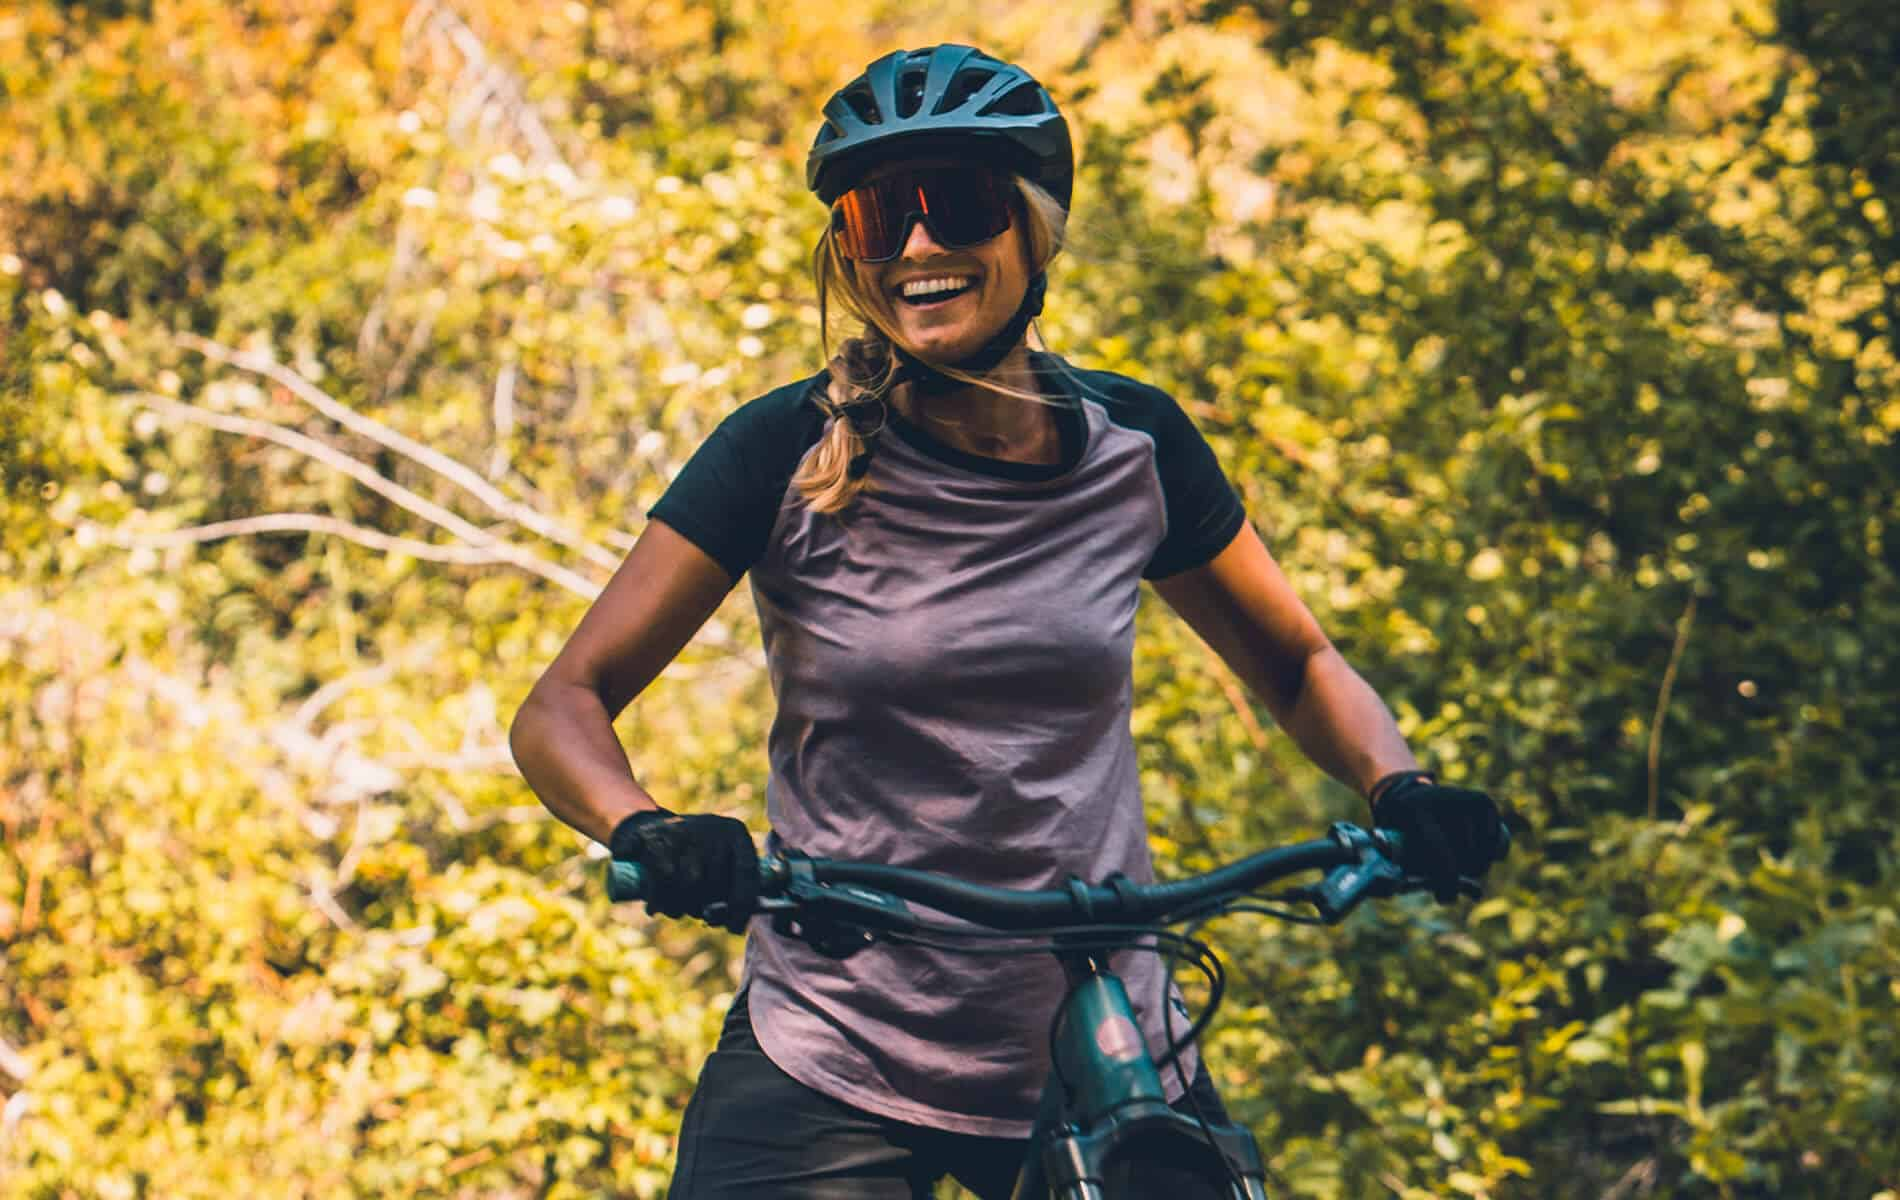 Mountain Biking And Mental Health, Some General Thoughts